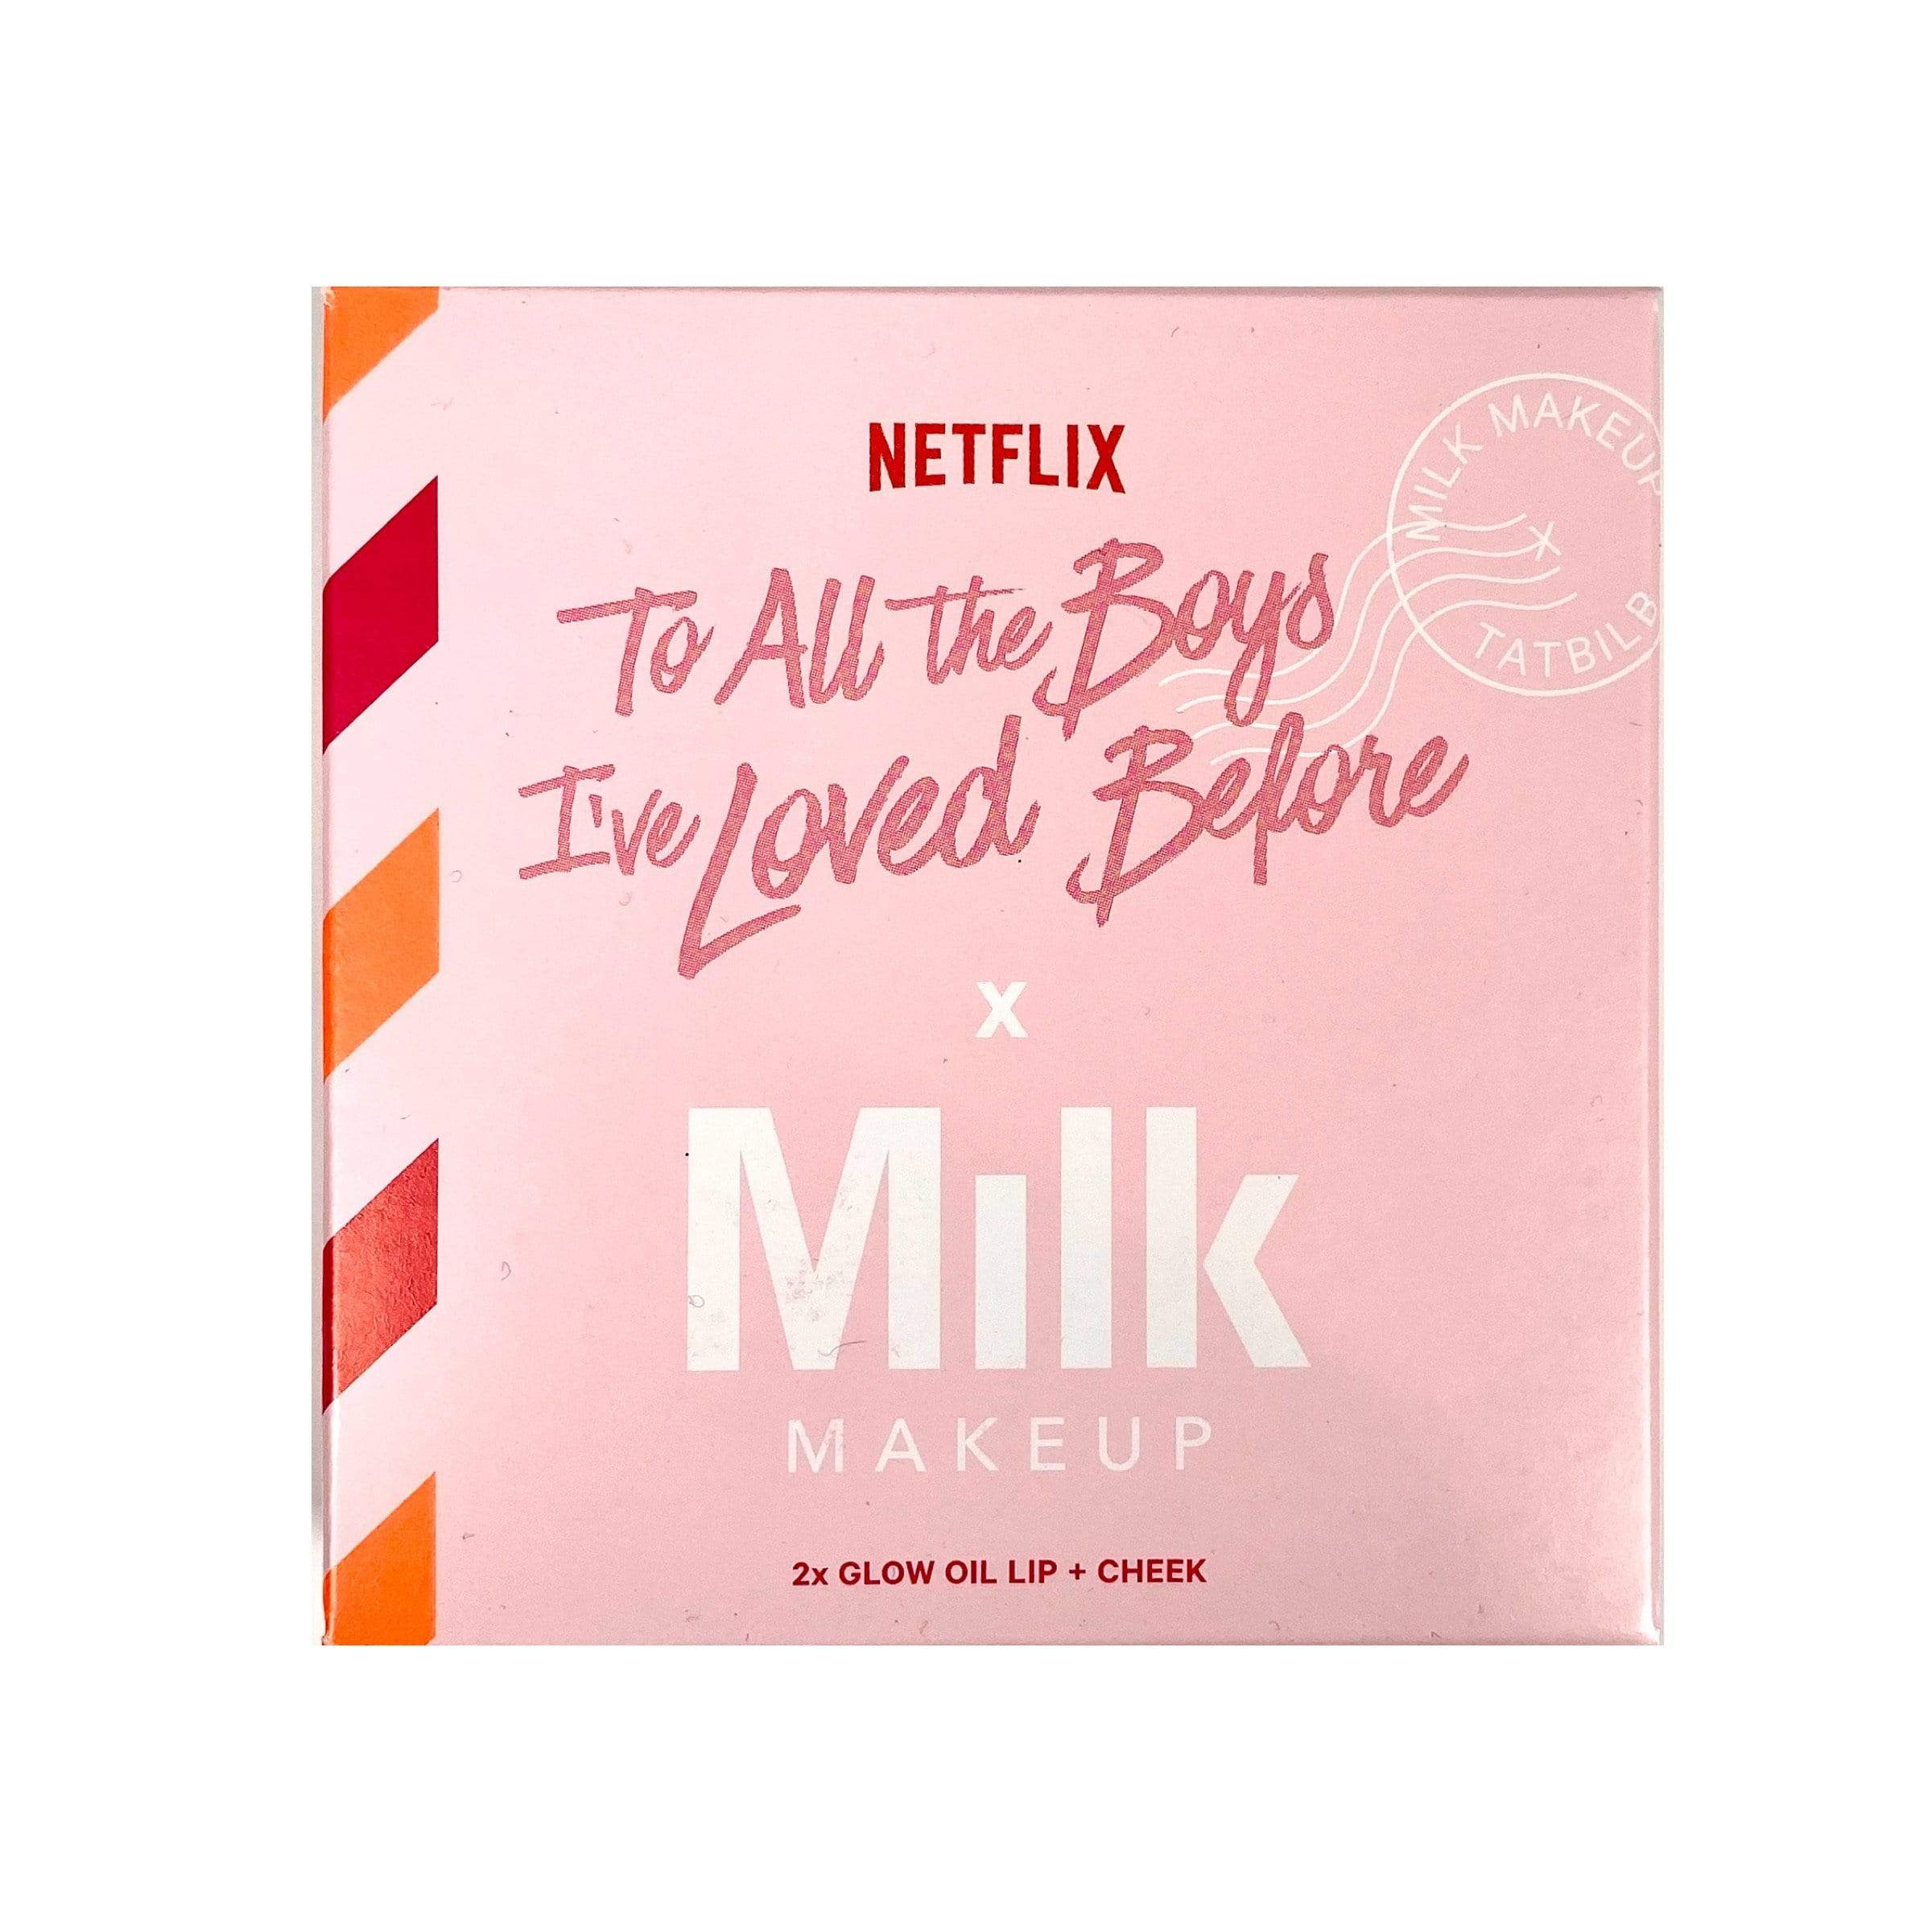 Milk Makeup Set MILK MAKEUP Netflix To All The Boys I've Loved Before - Glimmer/ Halo